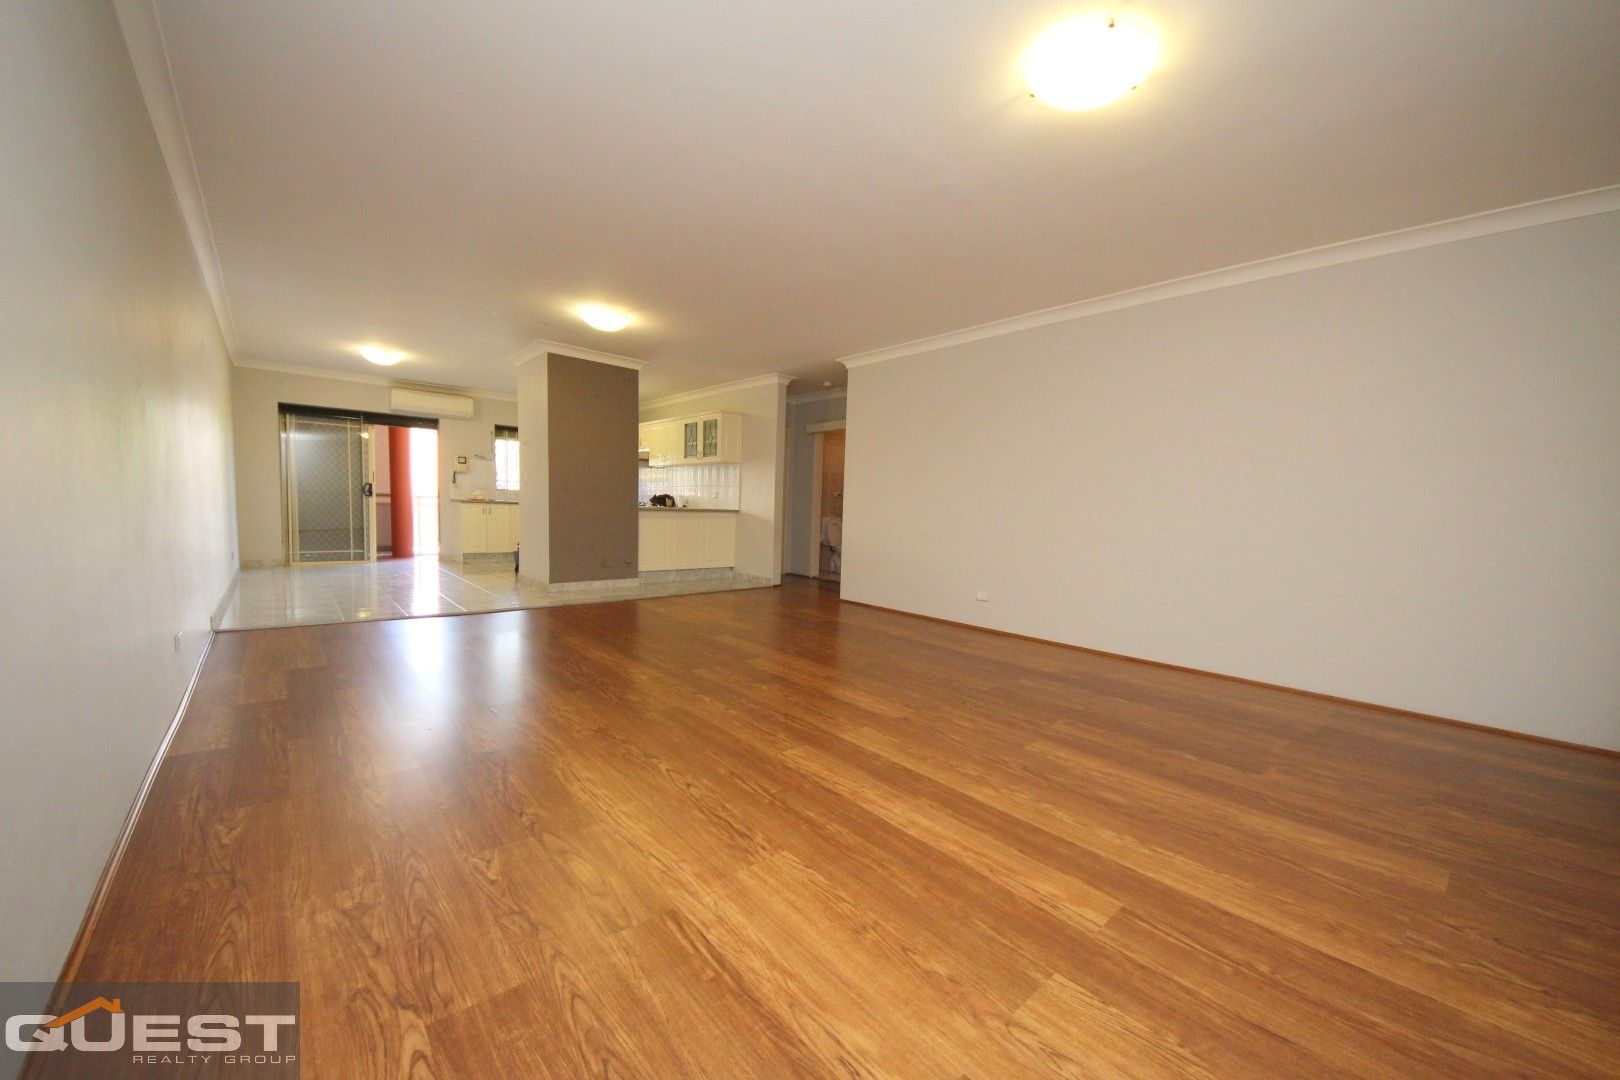 9/8-12 Bungalow Crescent, Bankstown NSW 2200, Image 1